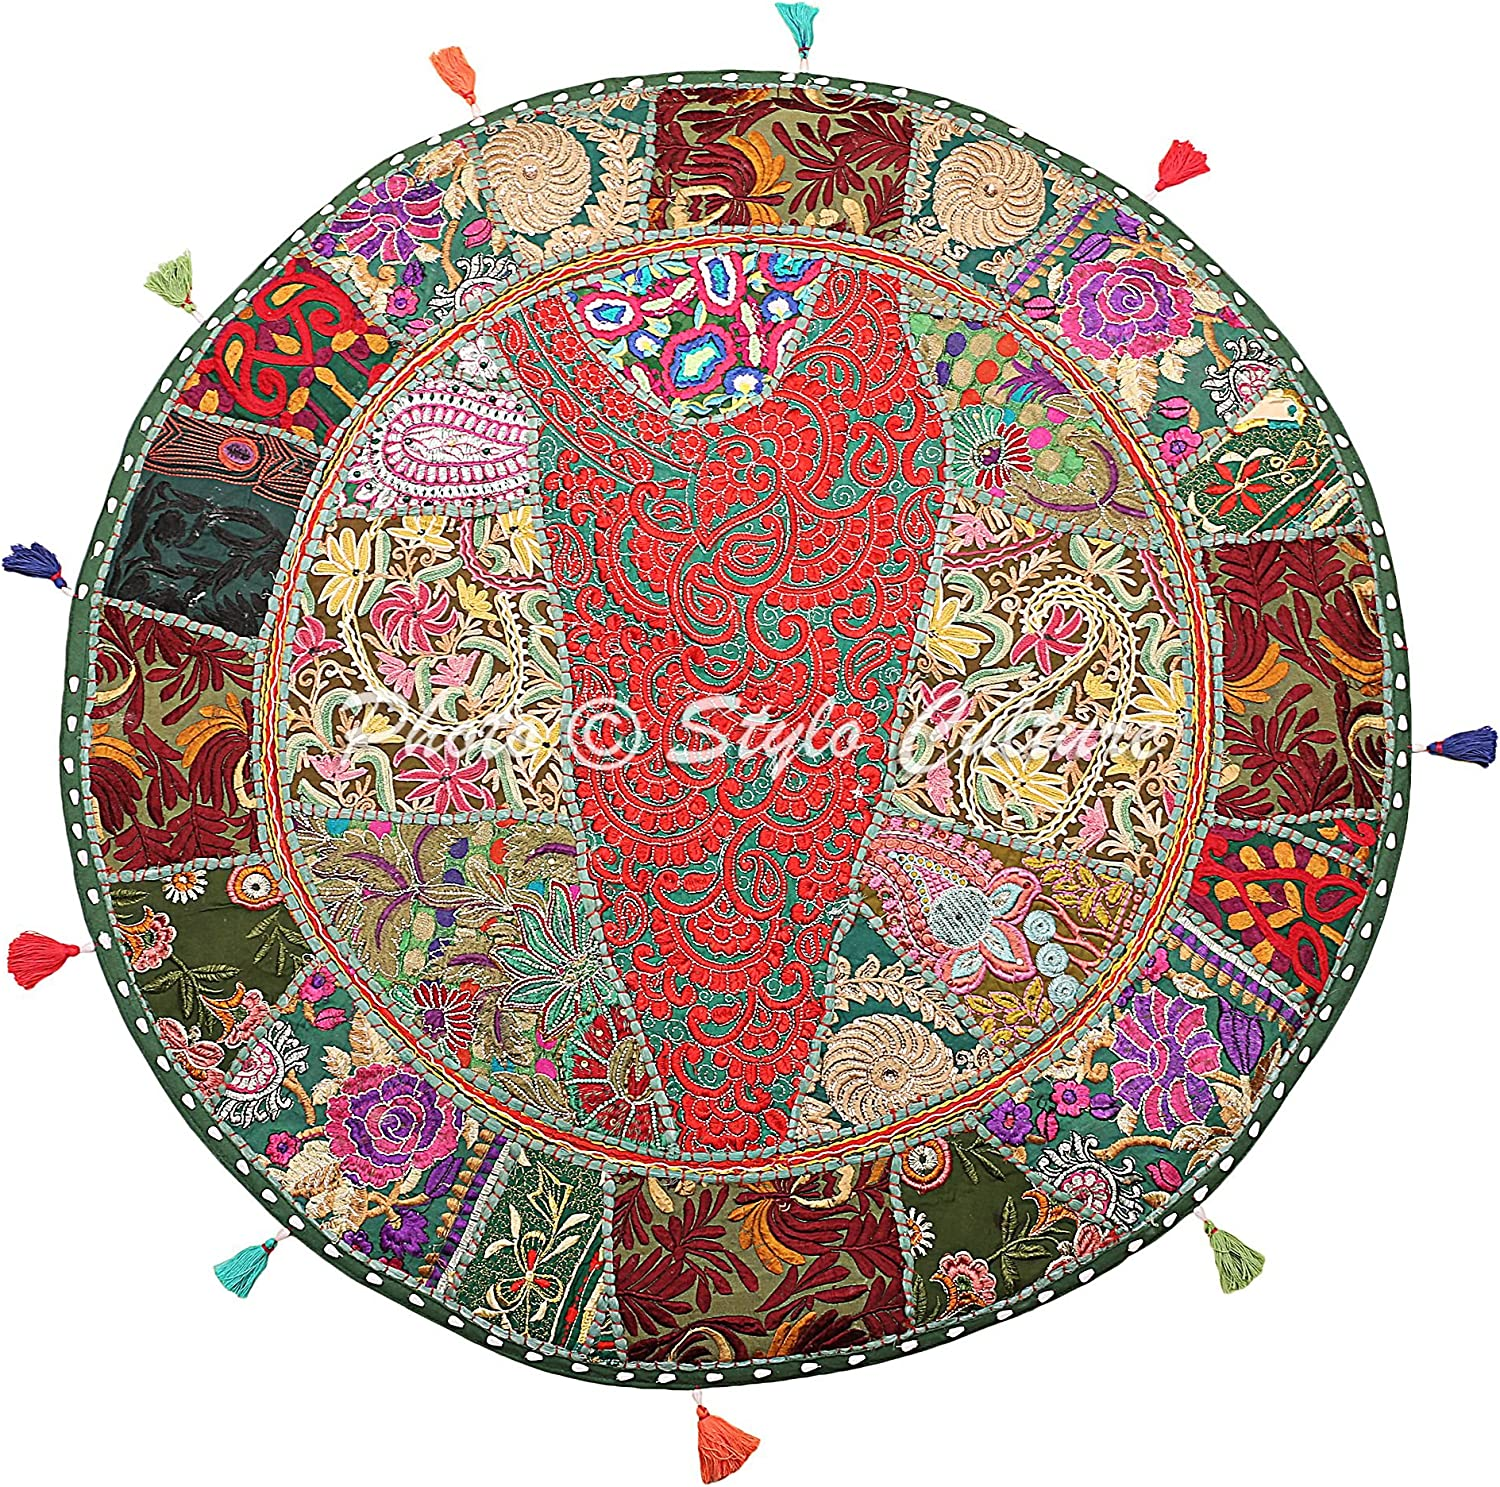 Stylo Culture Ethnic Topics on TV Round Floor Cover Patchwork Vintage Max 47% OFF Cushion